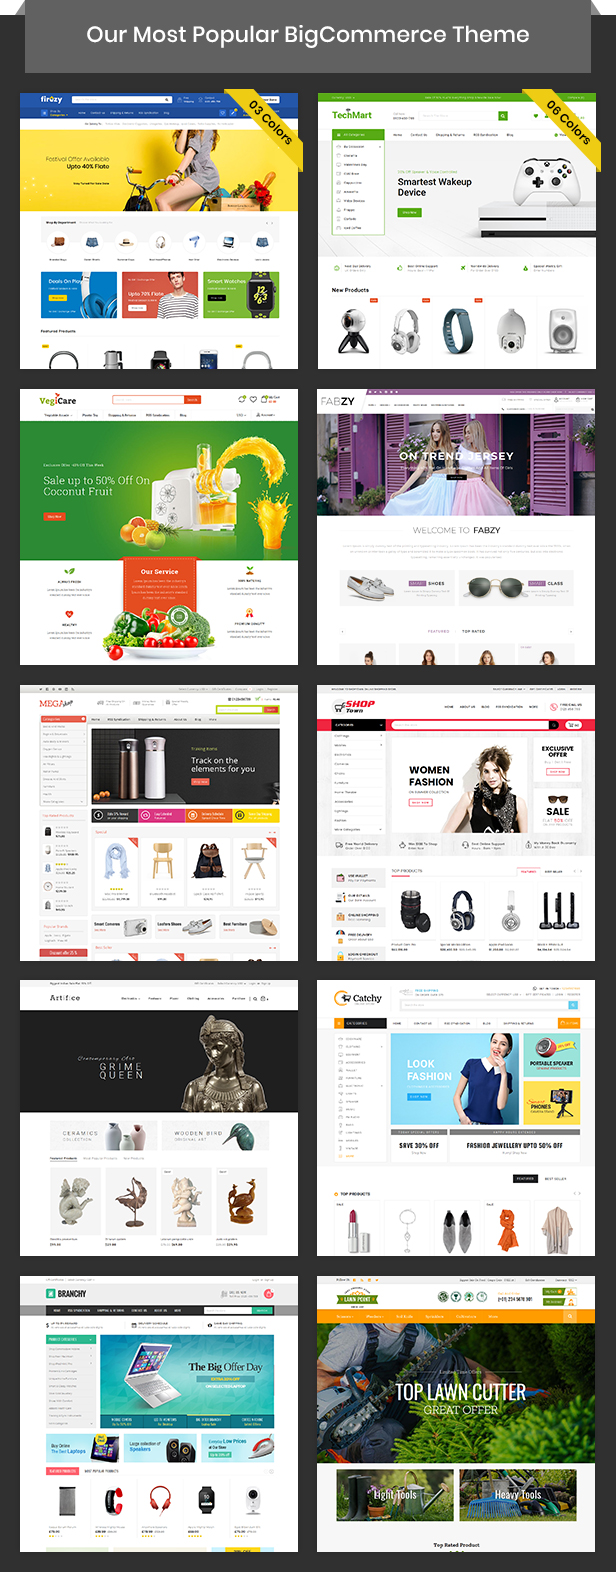 Firezy - Multipurpose Stencil BigCommerce Theme - 5